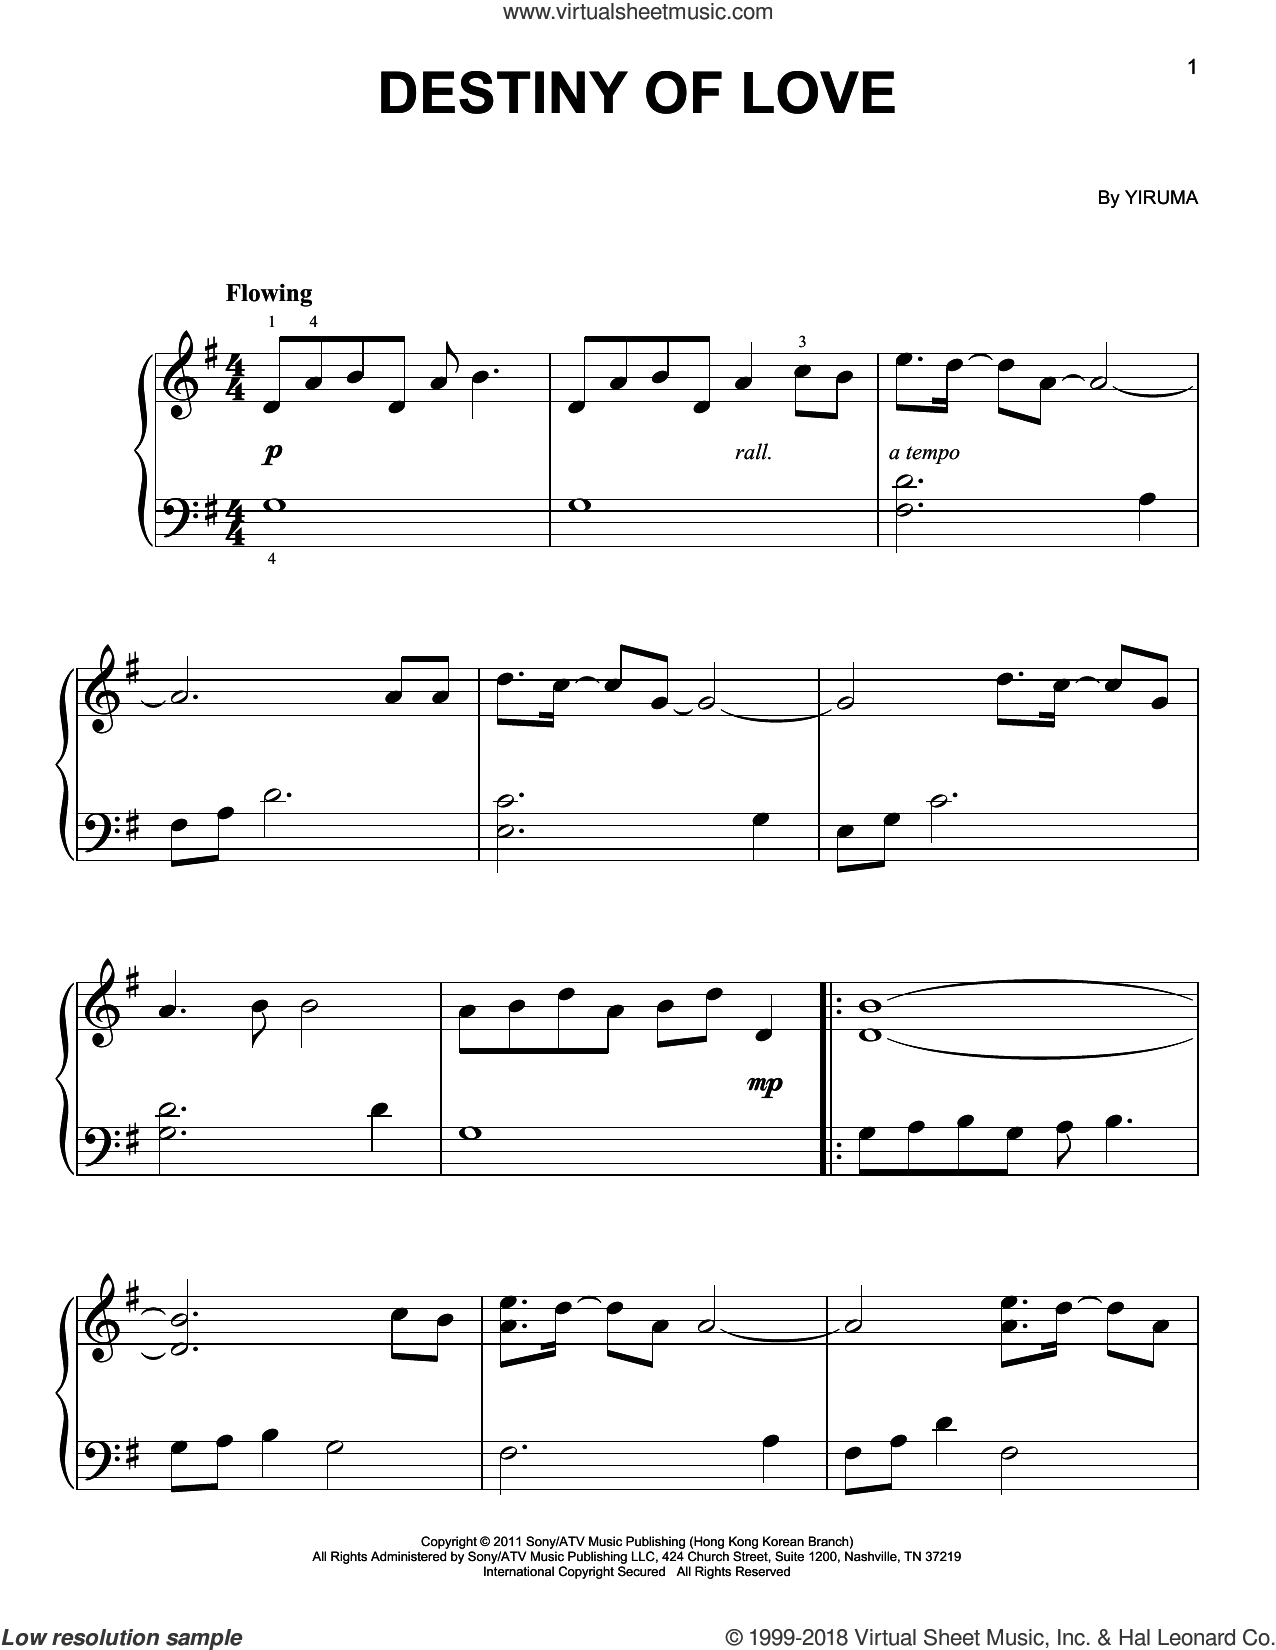 Destiny Of Love sheet music for piano solo by Yiruma, classical score, easy skill level